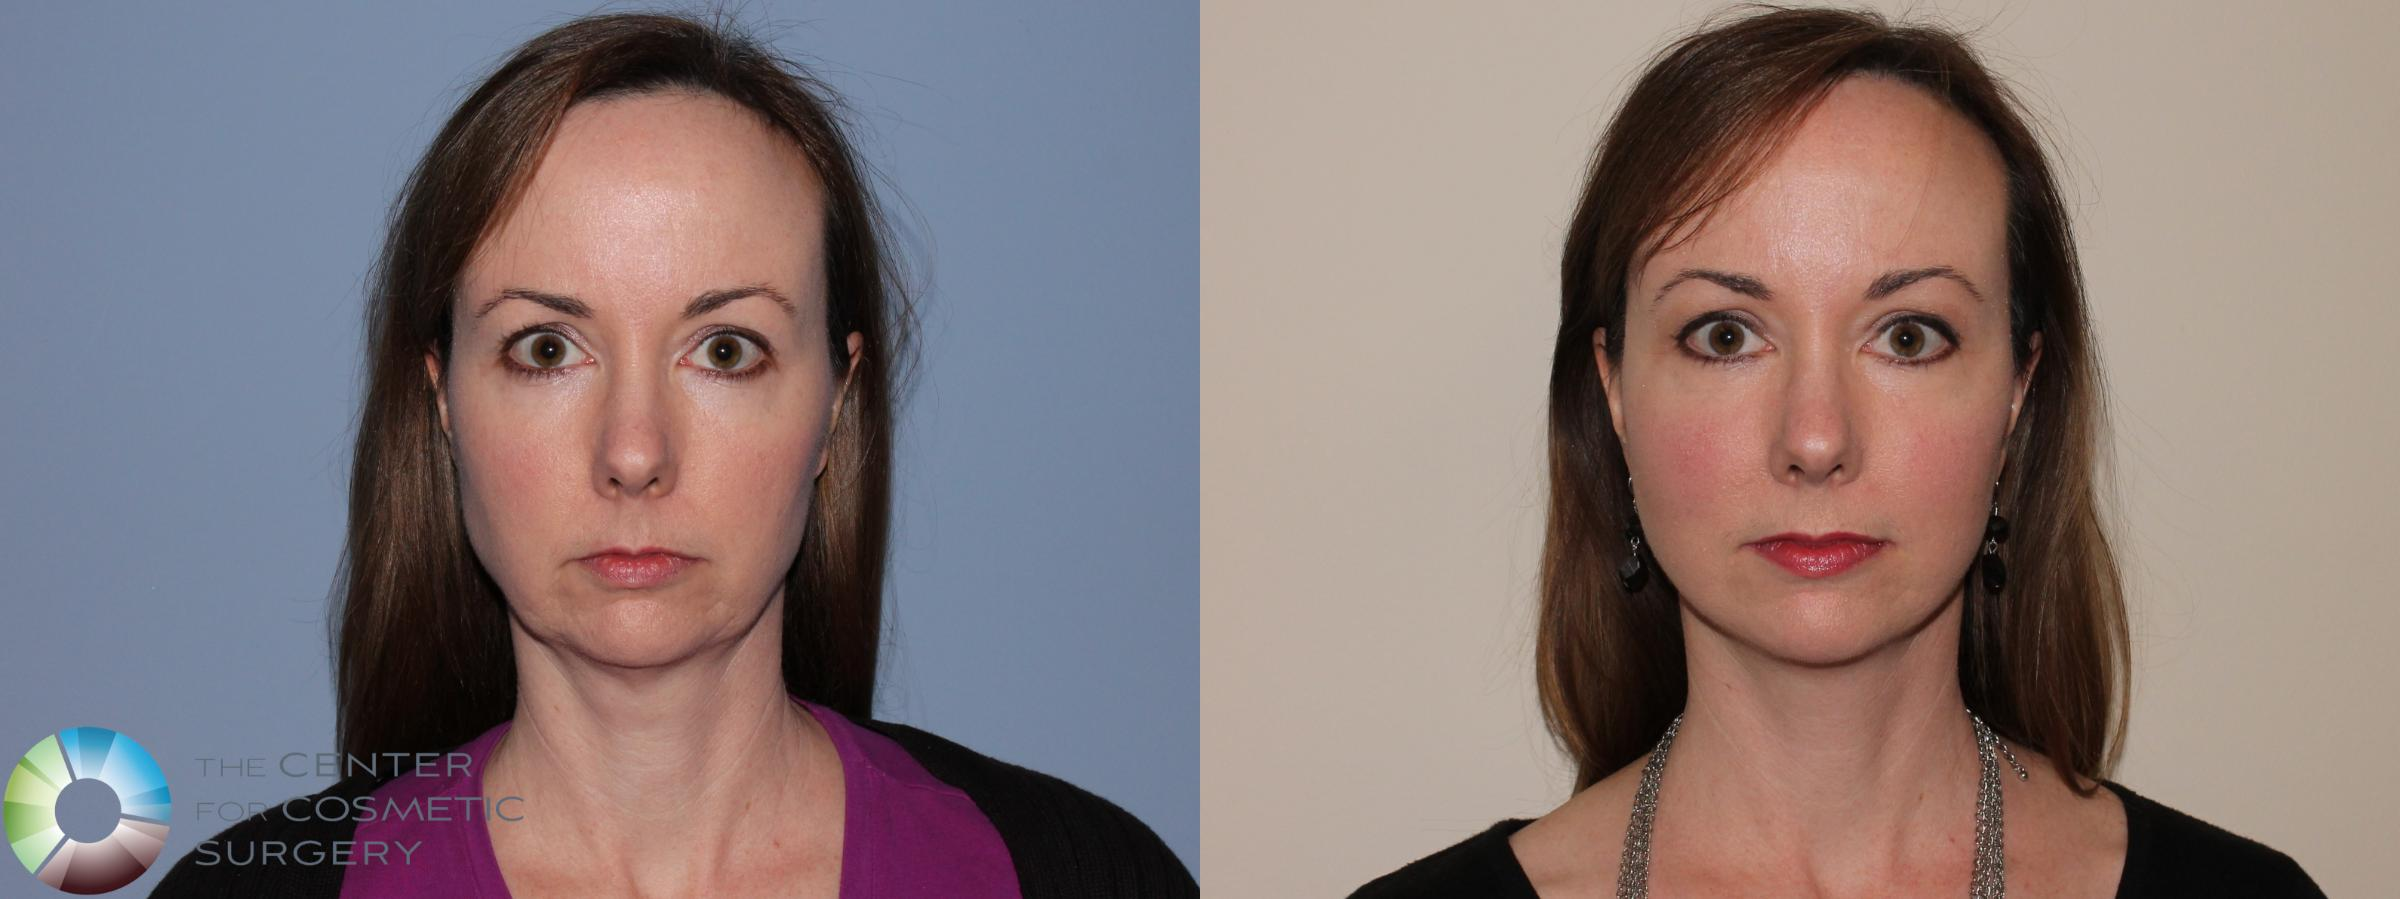 Neck Lift Case 11462 Before & After Front | Golden, CO | The Center for Cosmetic Surgery